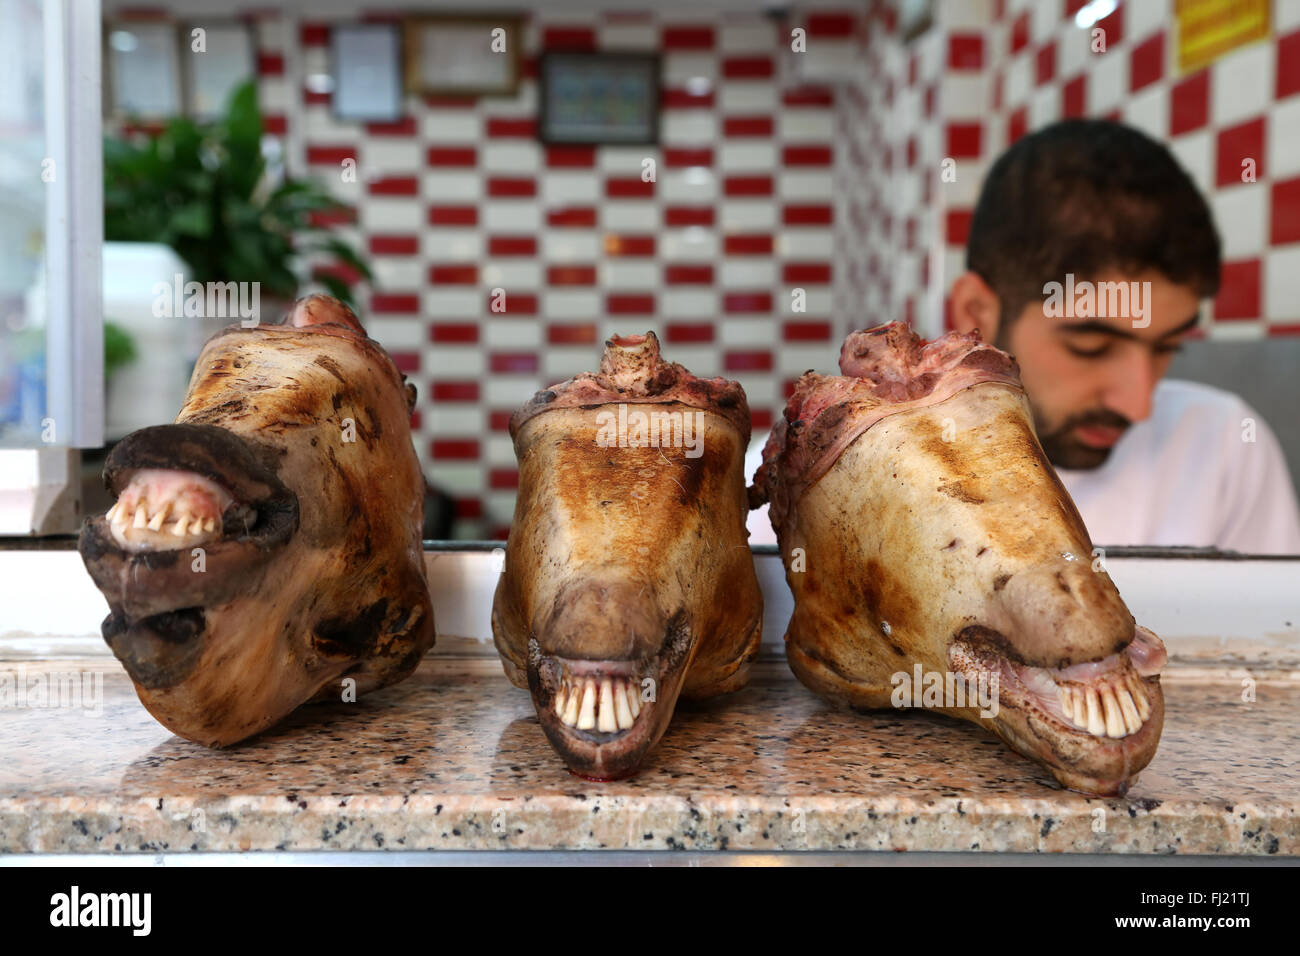 Mutton heads for sale at the butcher's in Istanbul , Turkey - Stock Image